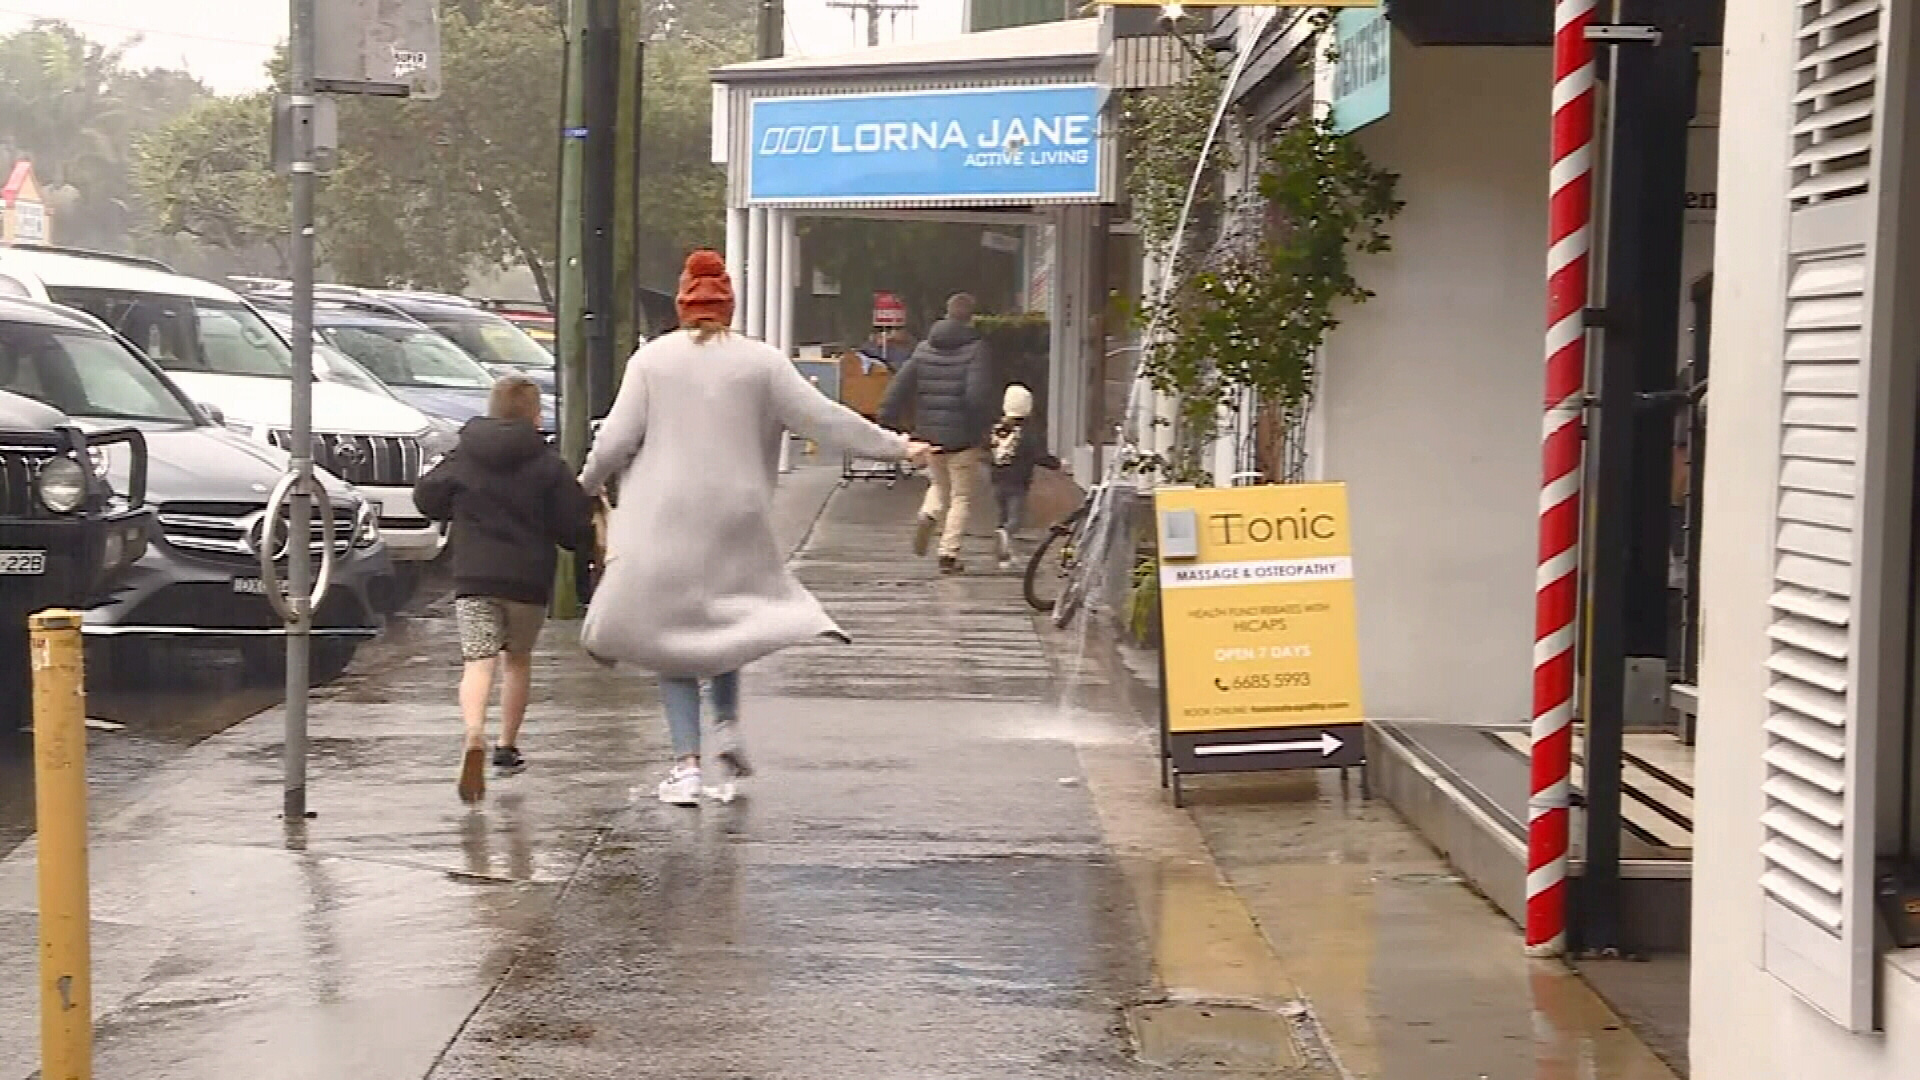 Weekend showers forecast for southeast Australia